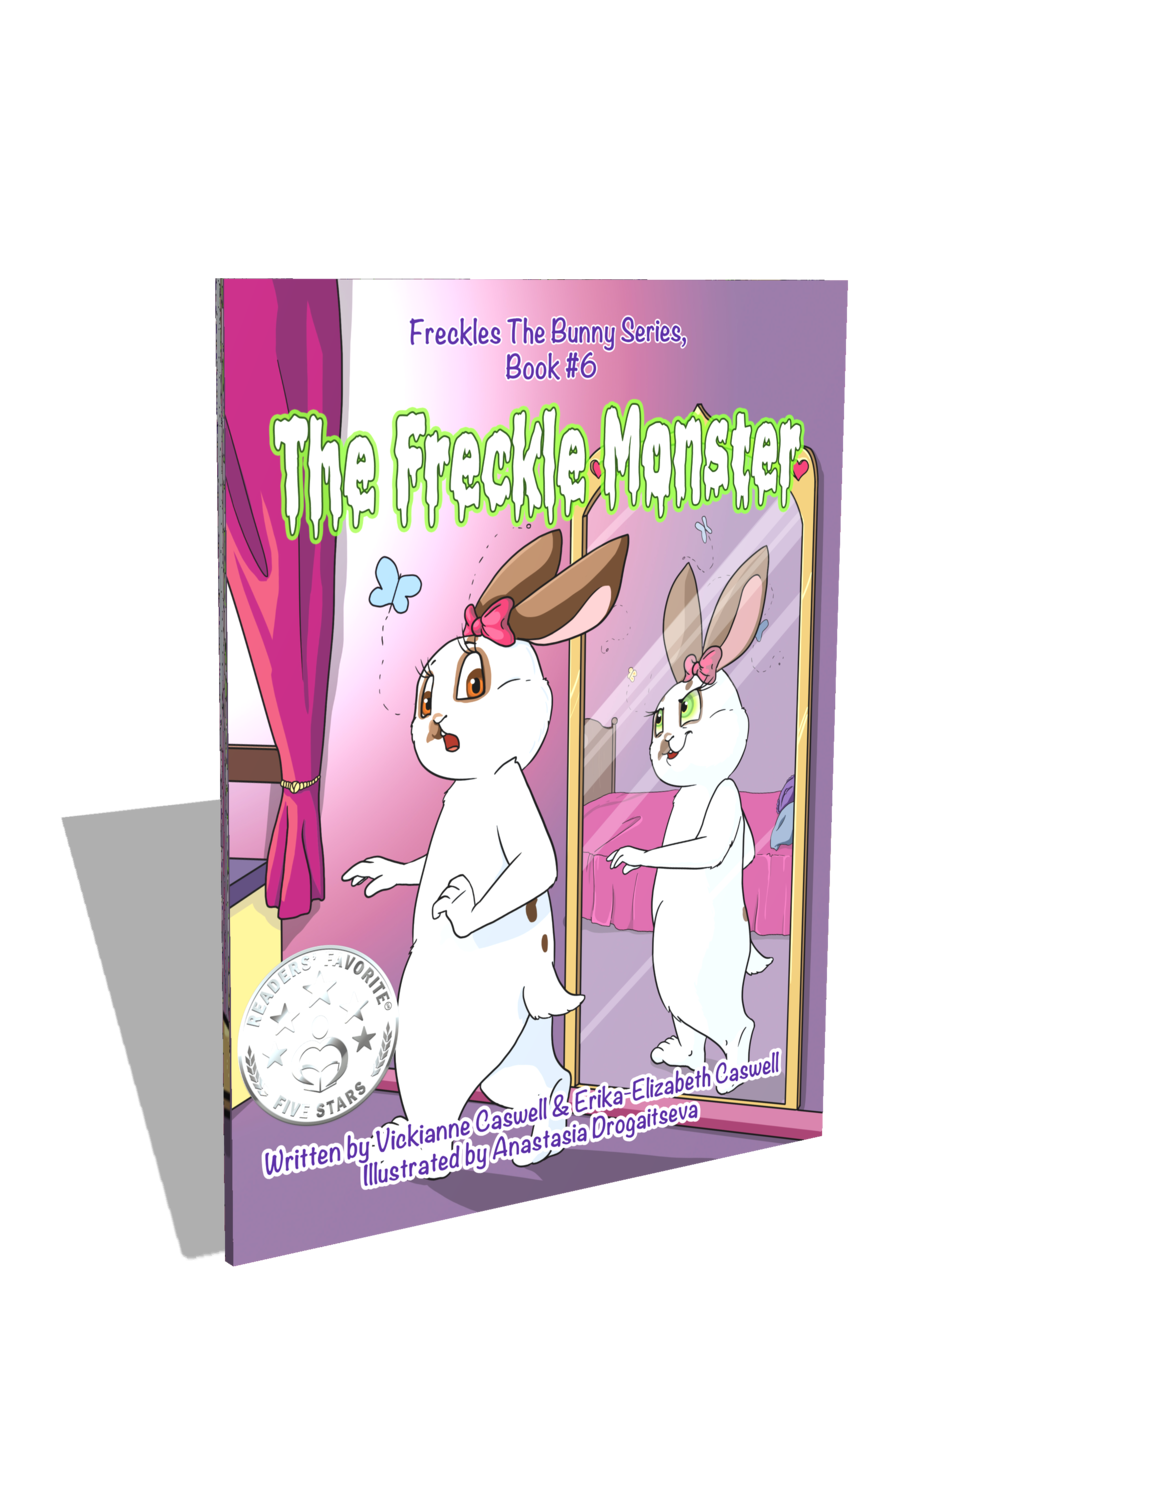 The Freckle Monster (Freckles the Bunny Series # 6)